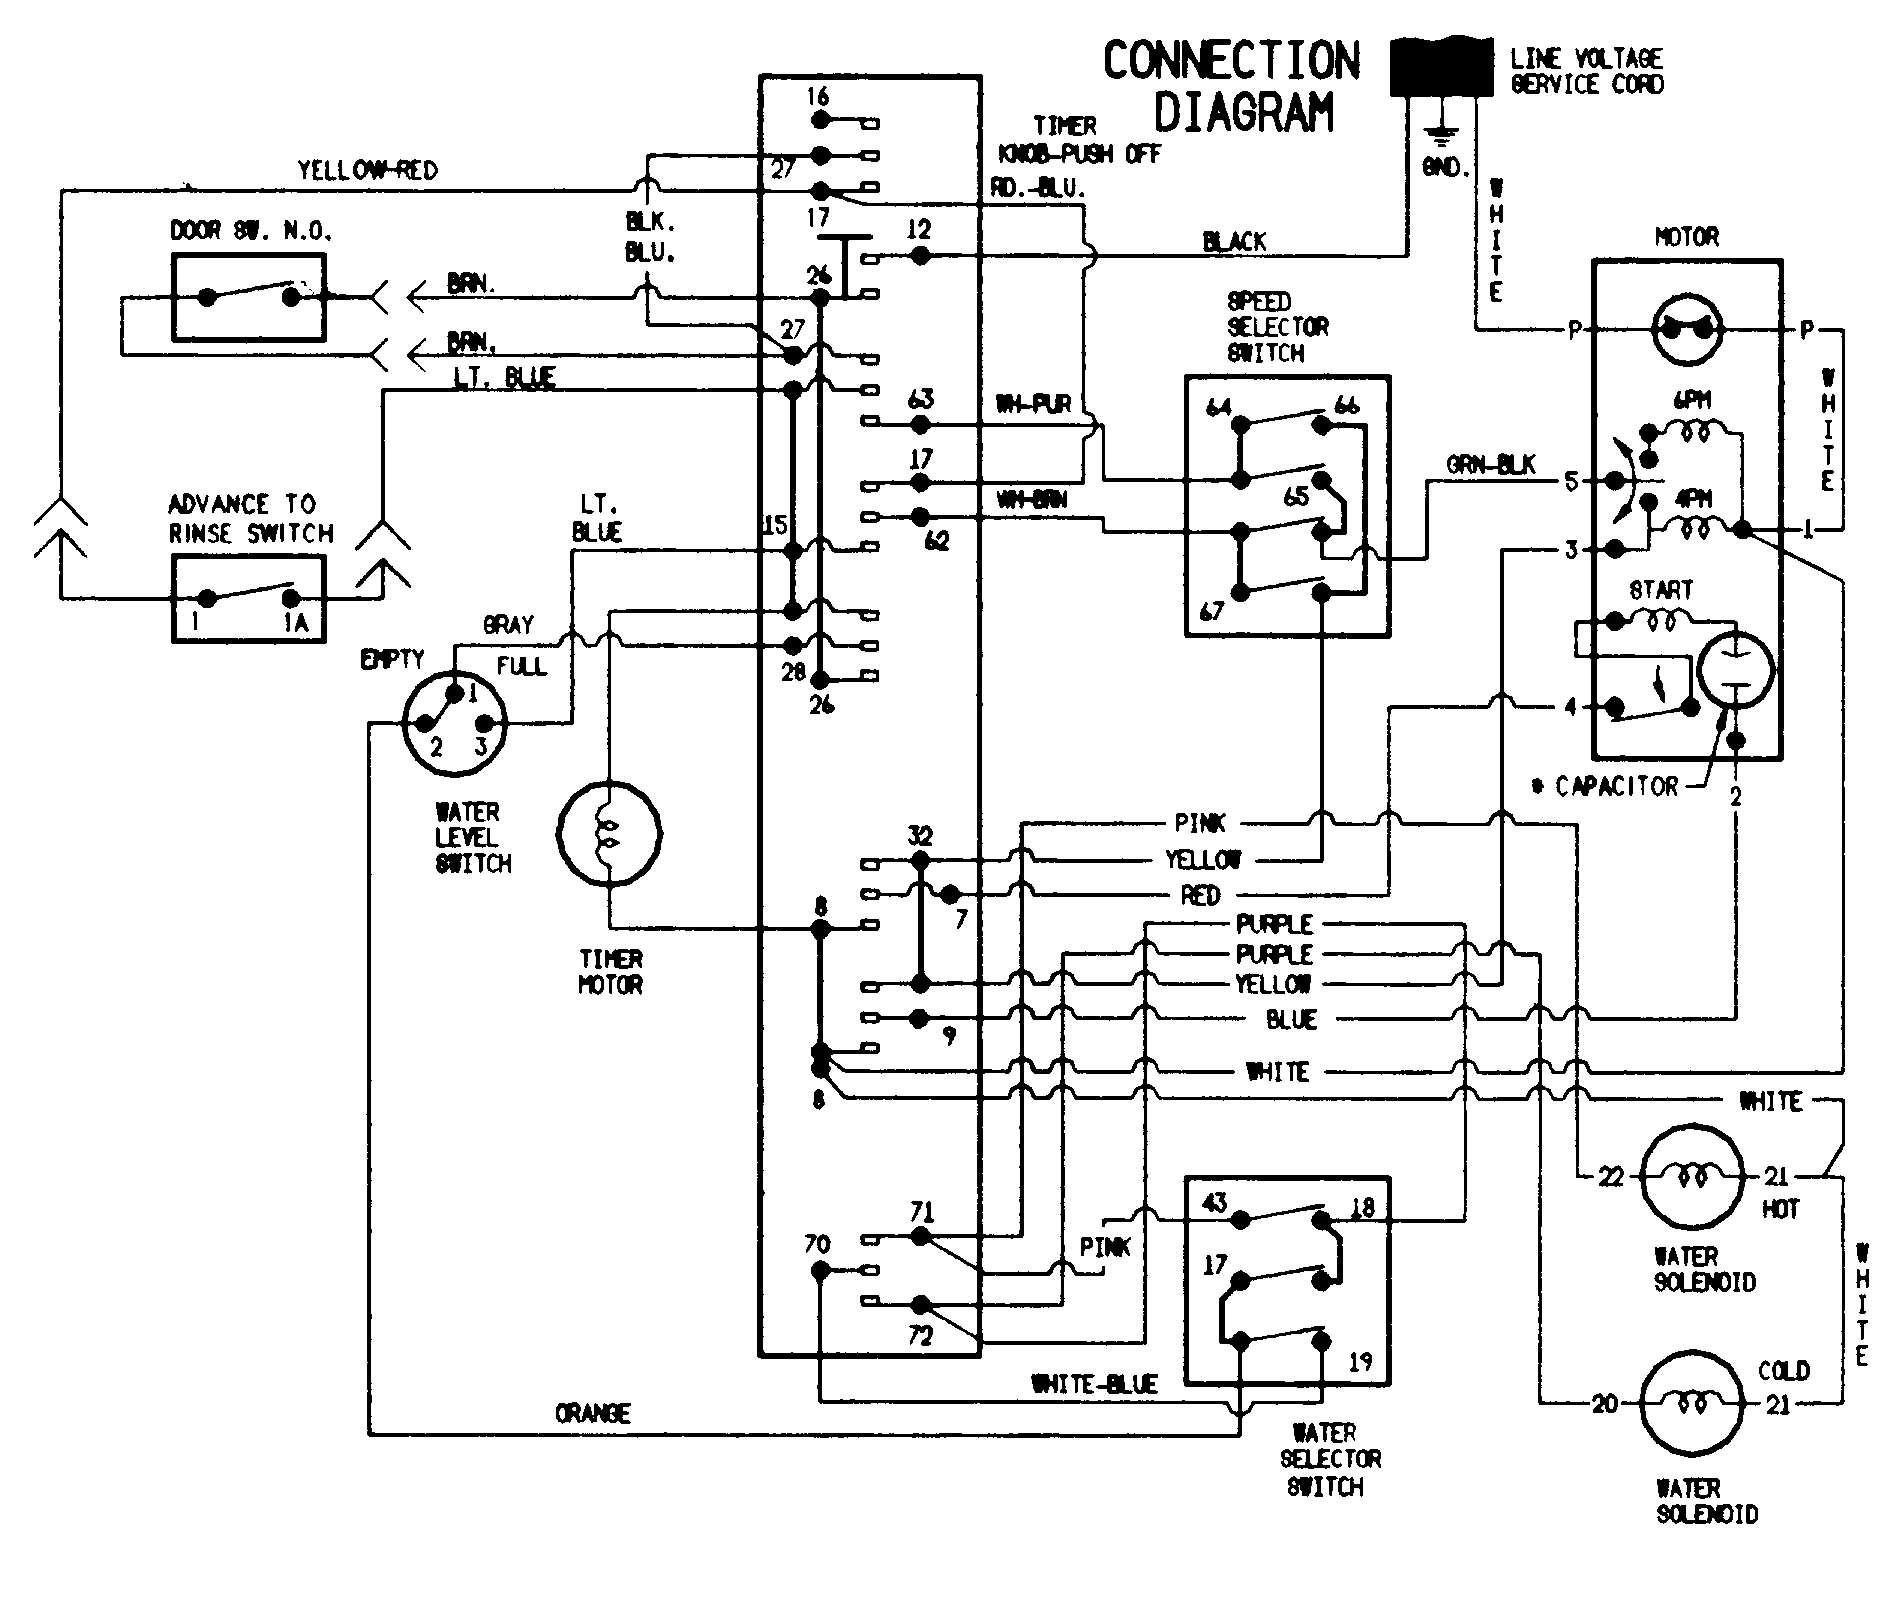 Maytag Repair Schematic on whirlpool washer electrical wiring diagram